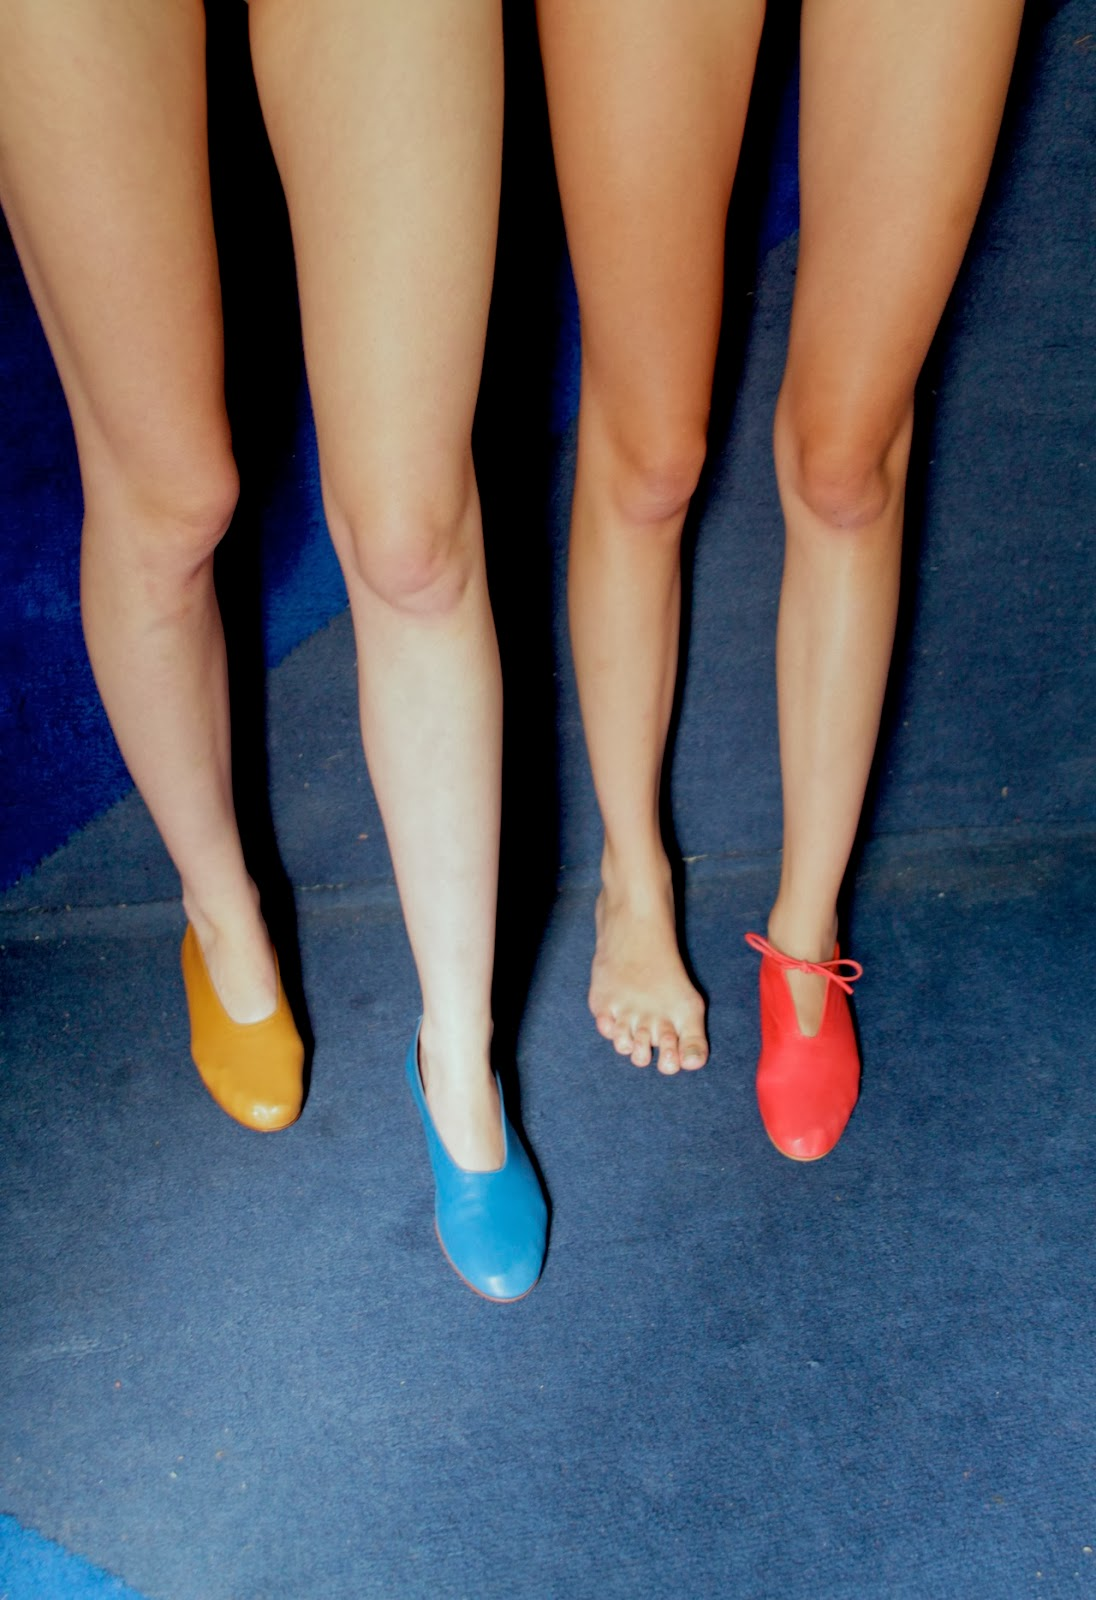 shoes by Martiniano Lopez for MARTINIANO, girls legs in leather slippers, blue background